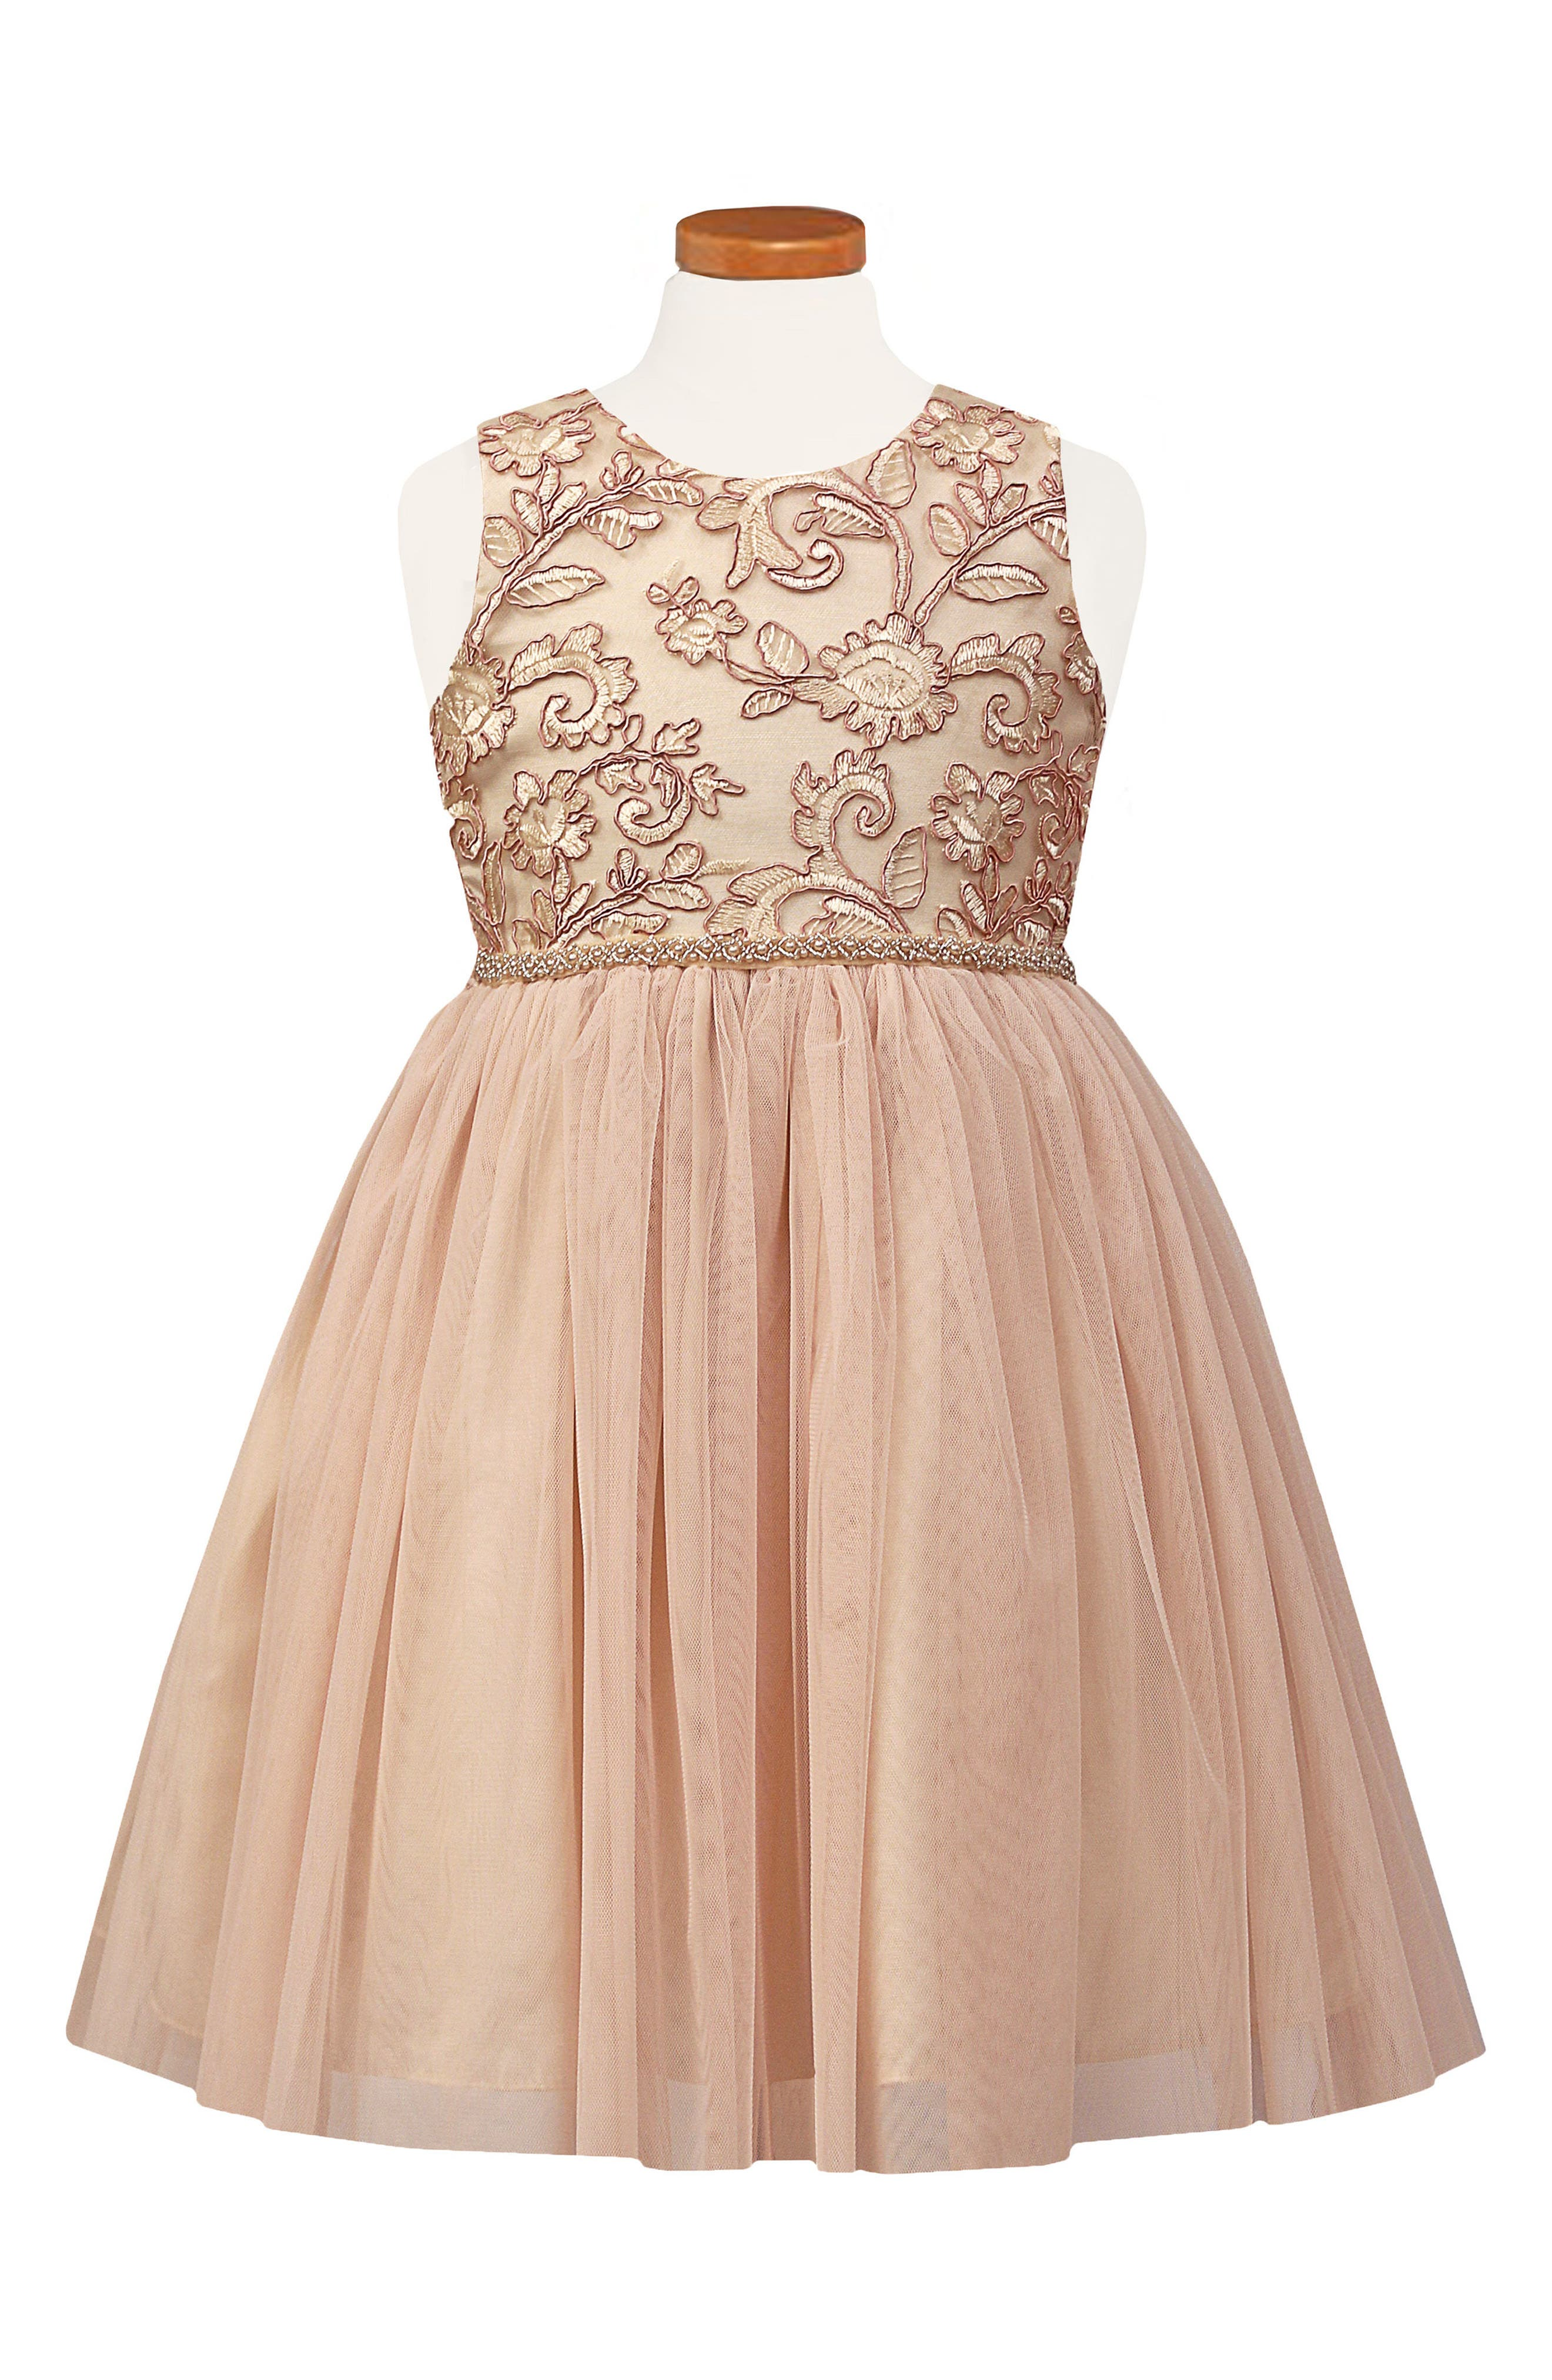 Embroidered Tulle Dress,                             Main thumbnail 1, color,                             660